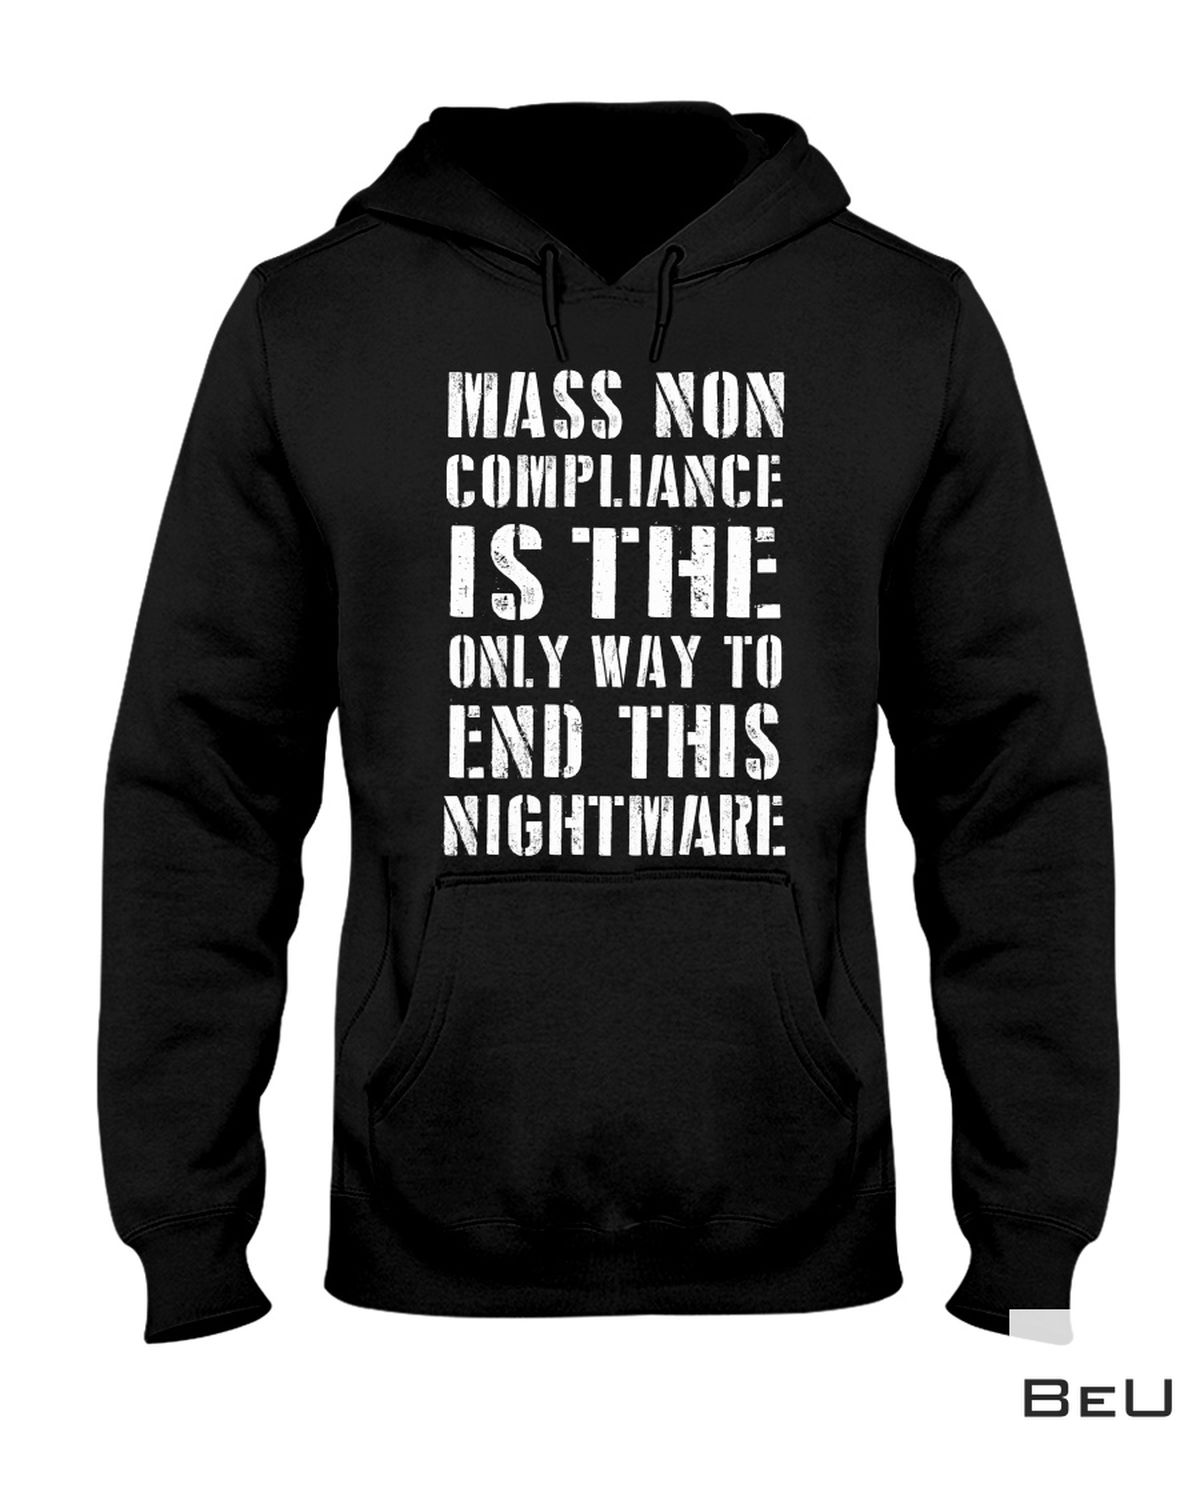 Best Shop Mass Non Compliance Is The Only Way To End This Nightmare Shirt, hoodie, tank top